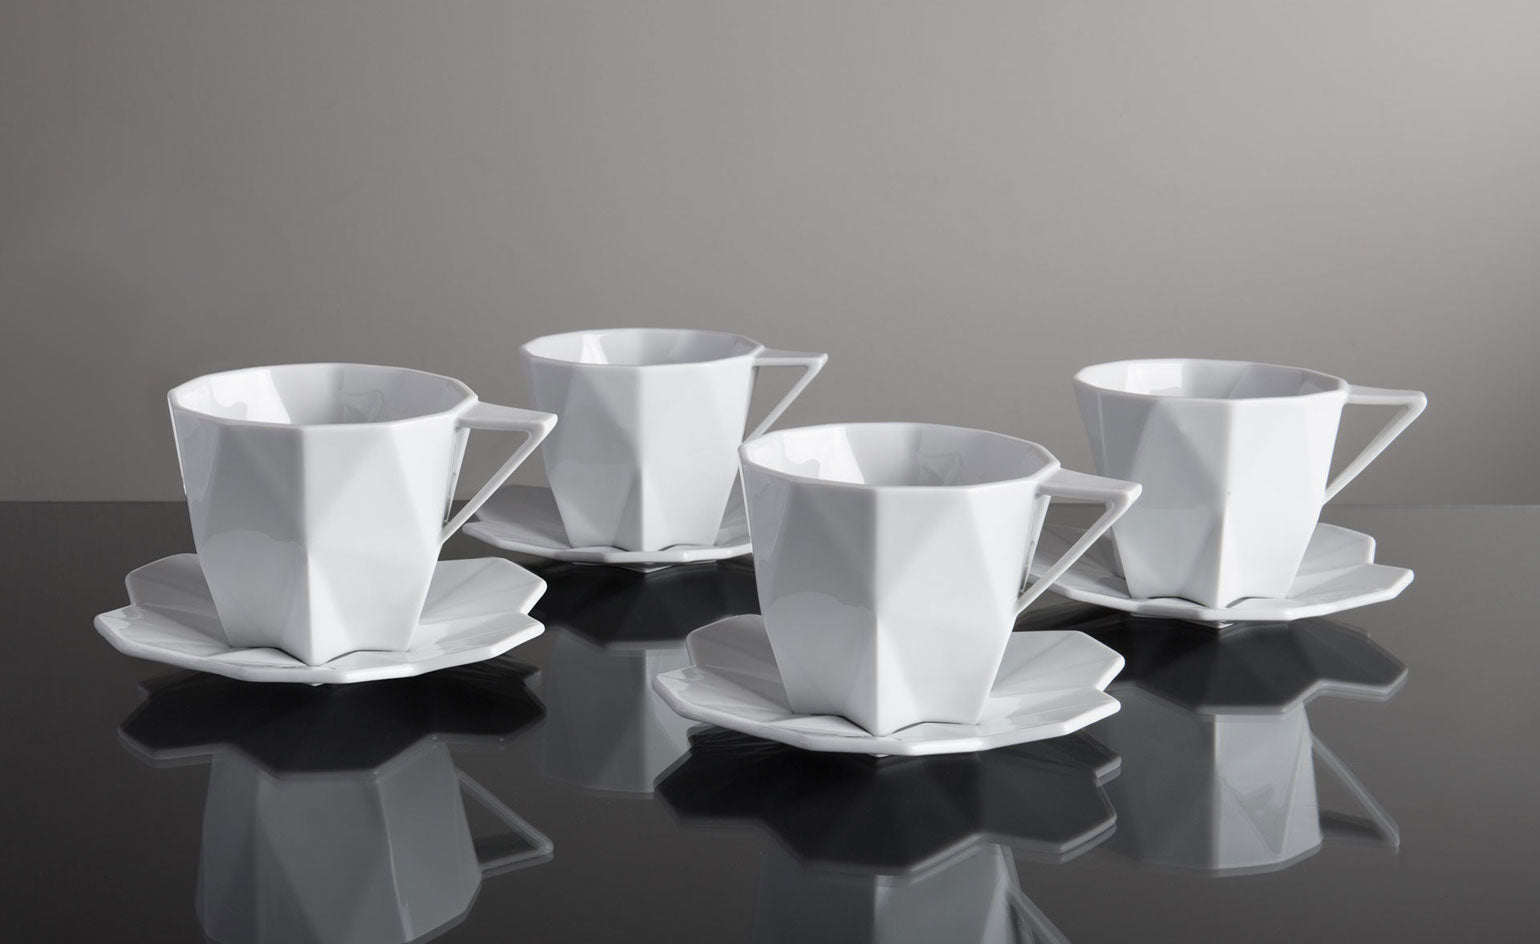 White cubist teacups and saucers from Lauriger